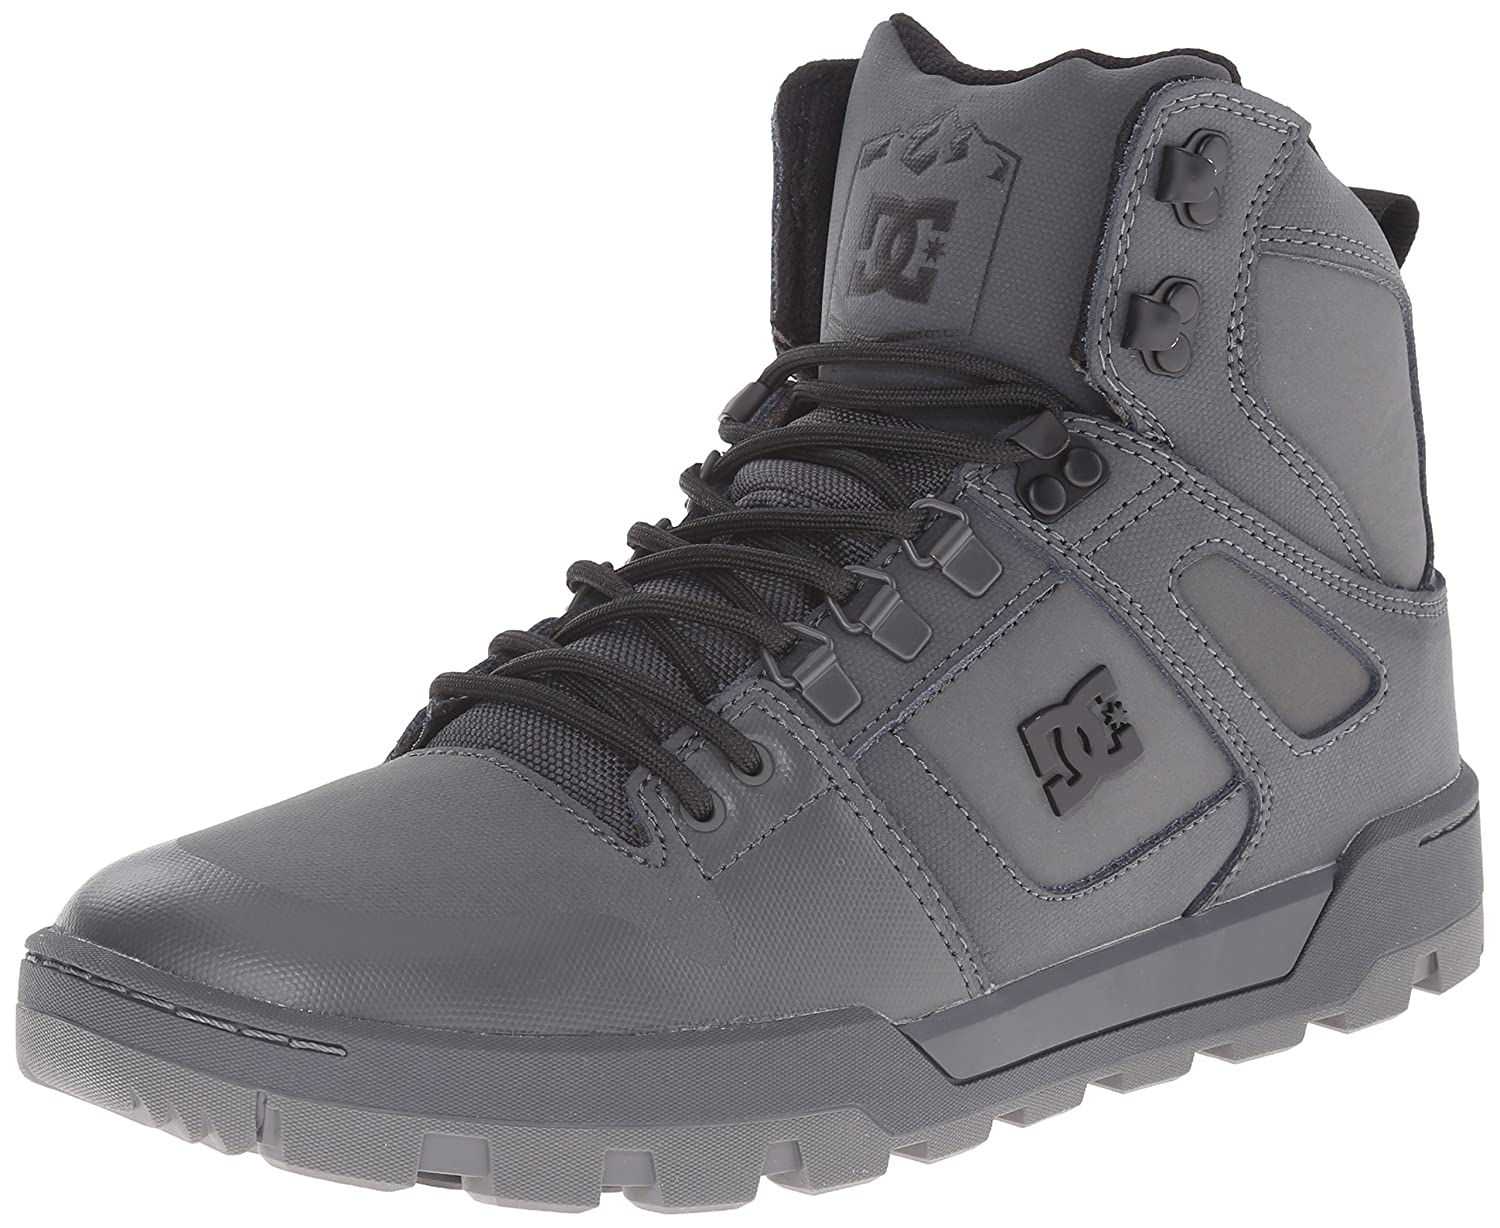 DC Men's Spartan High WR Snow Boot